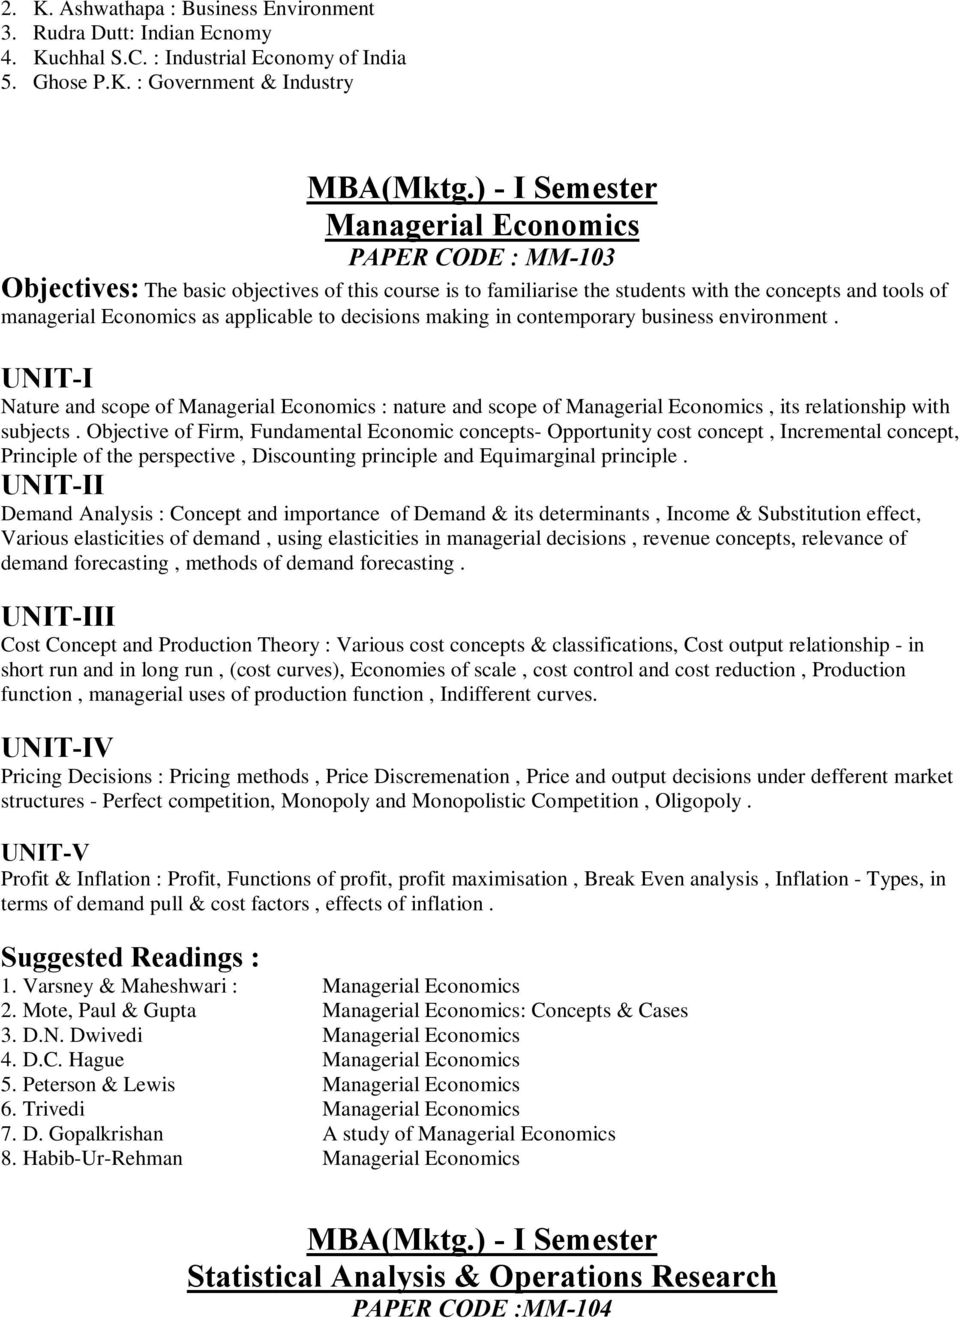 ) - I Semester Managerial Economics PAPER CODE : MM-103 Objectives: The basic objectives of this course is to familiarise the students with the concepts and tools of managerial Economics as